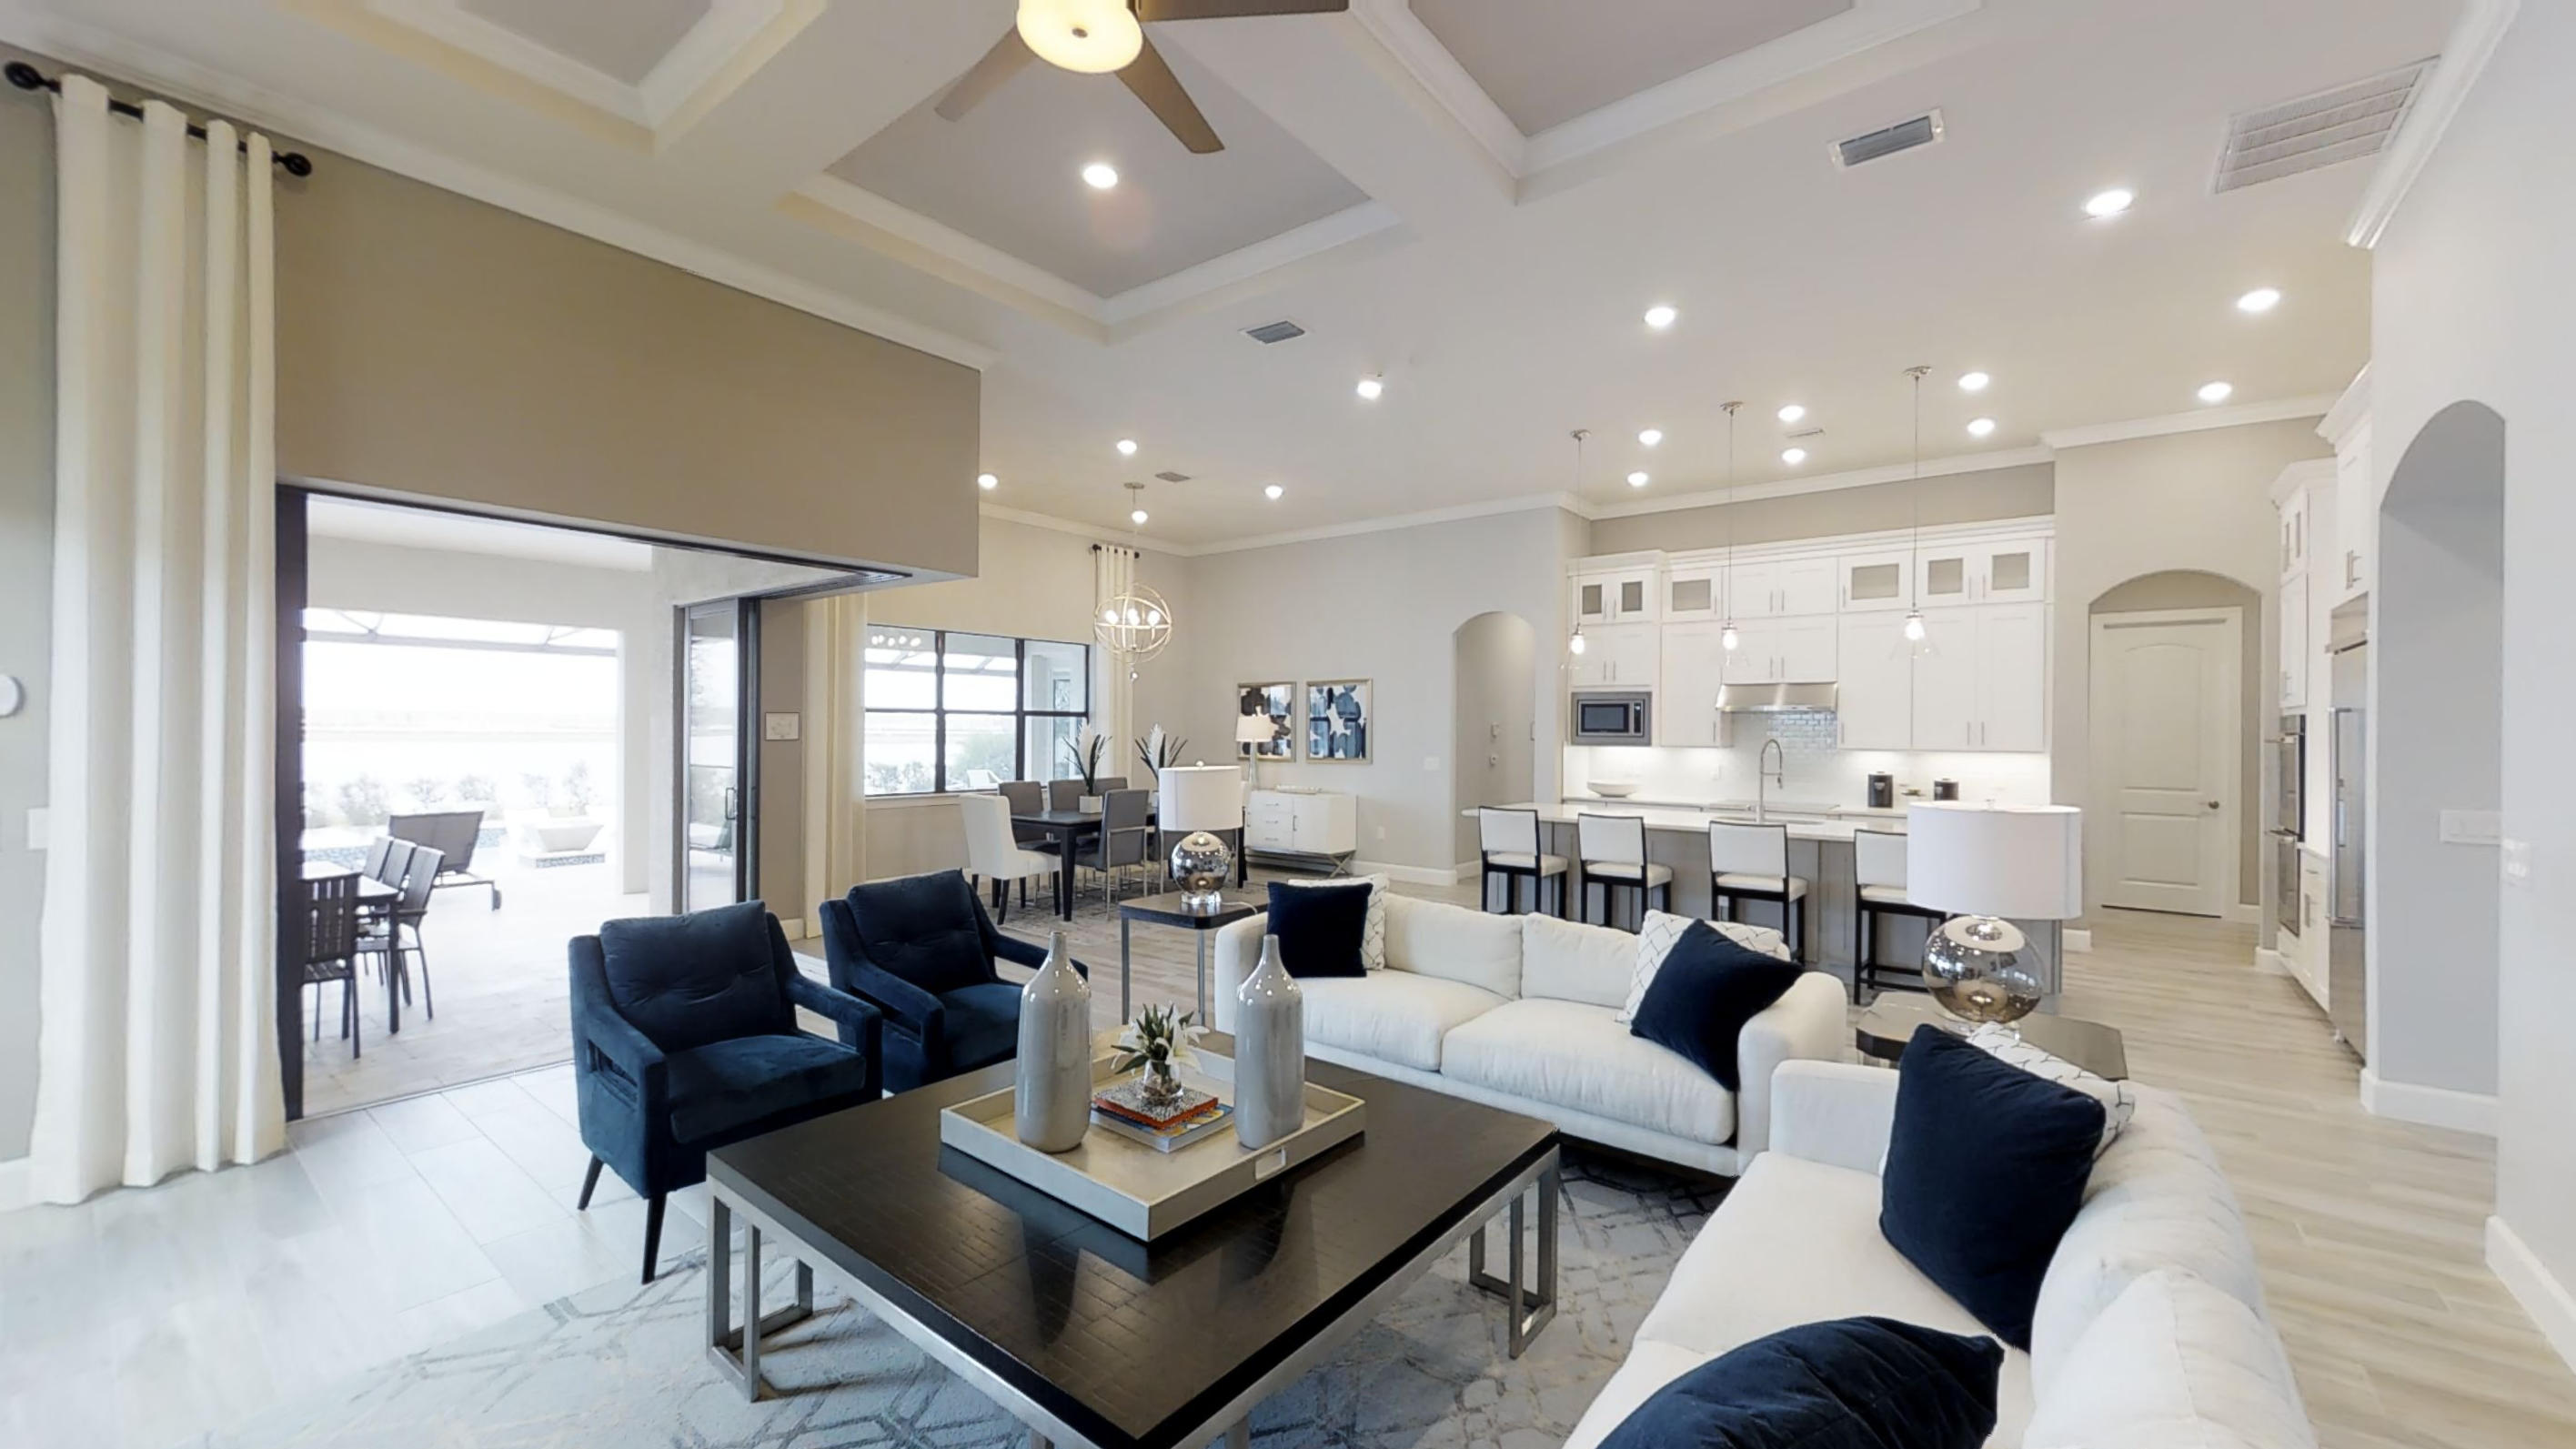 Pulte Homes: Nobility